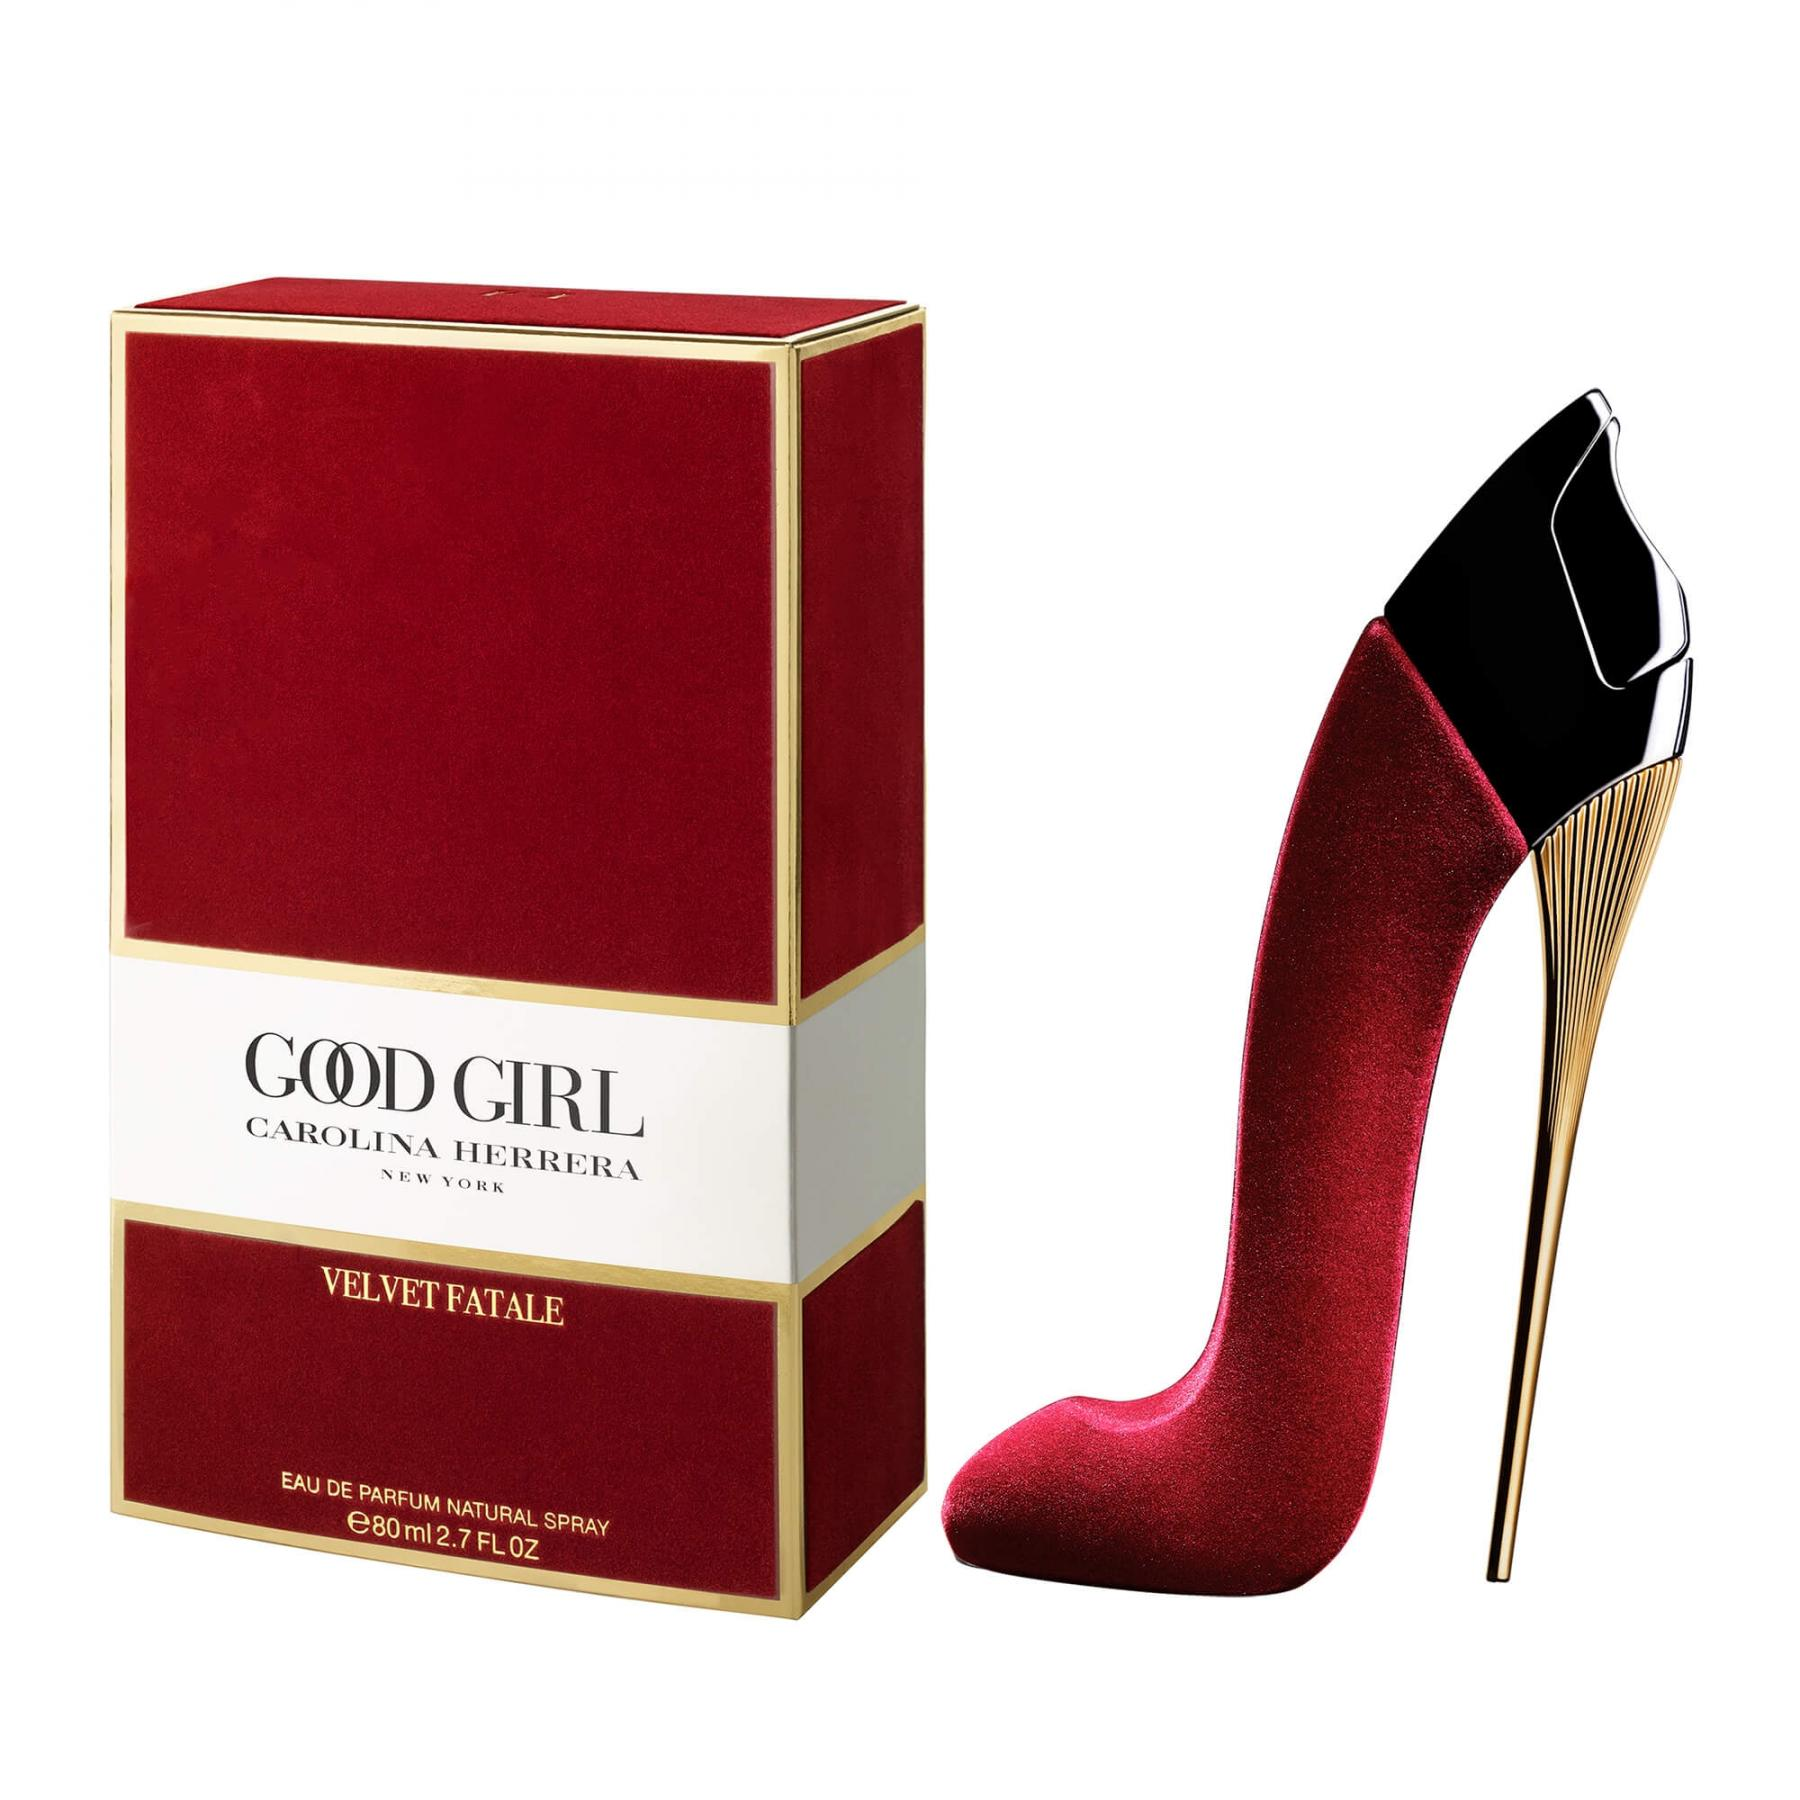 Good Girl Velvet Fatale Carolina Herrera Feminino Eau de Parfum 80ml